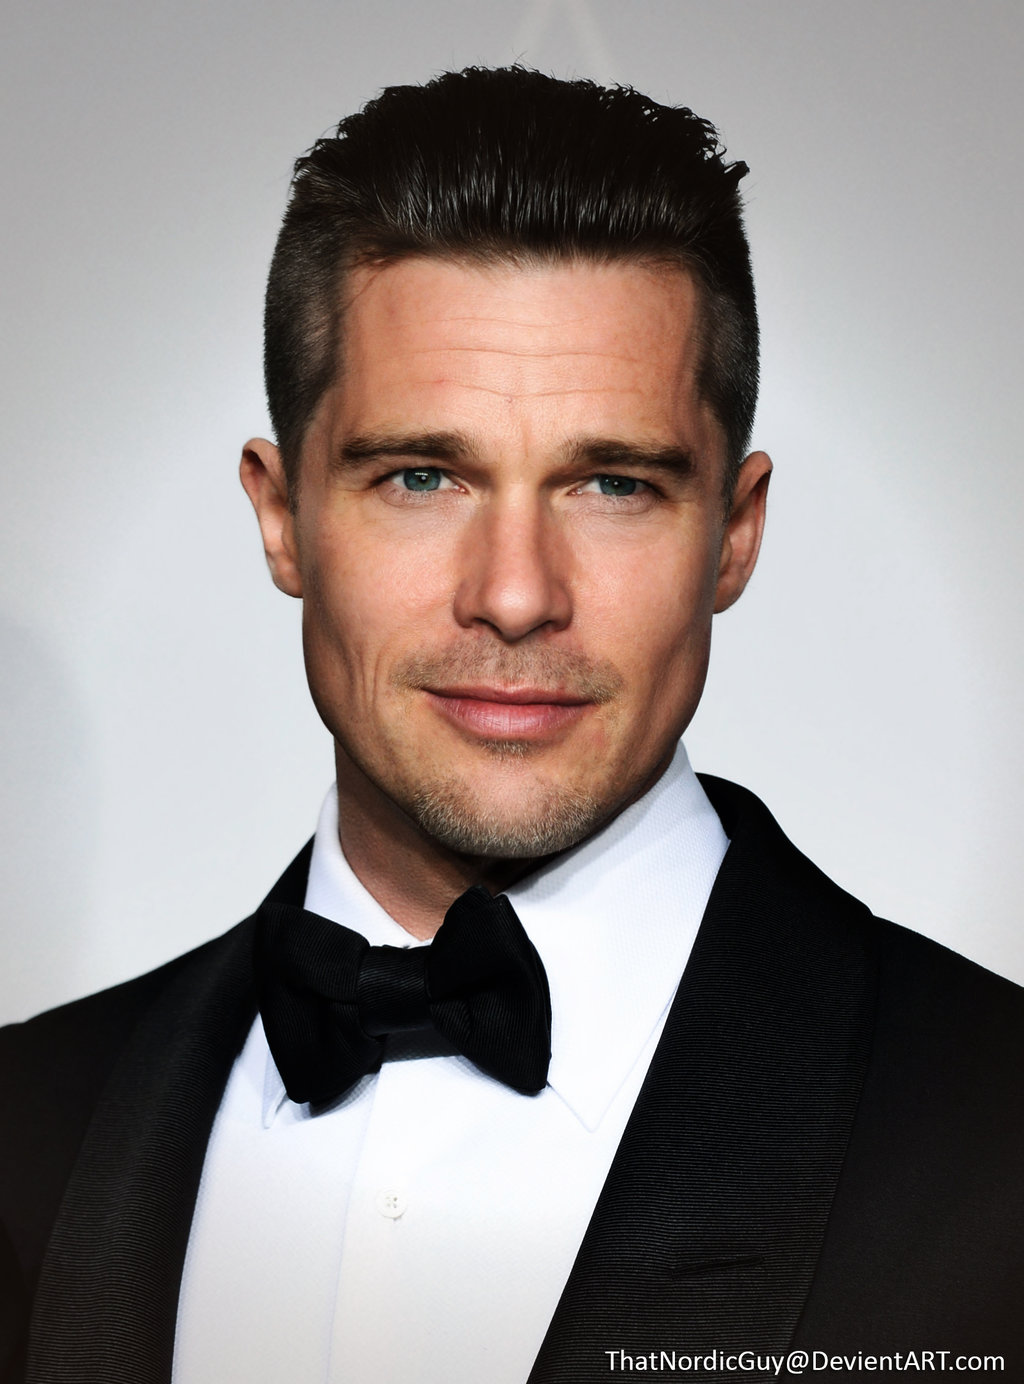 HQ Ethan Hawke Wallpapers   File 179.87Kb